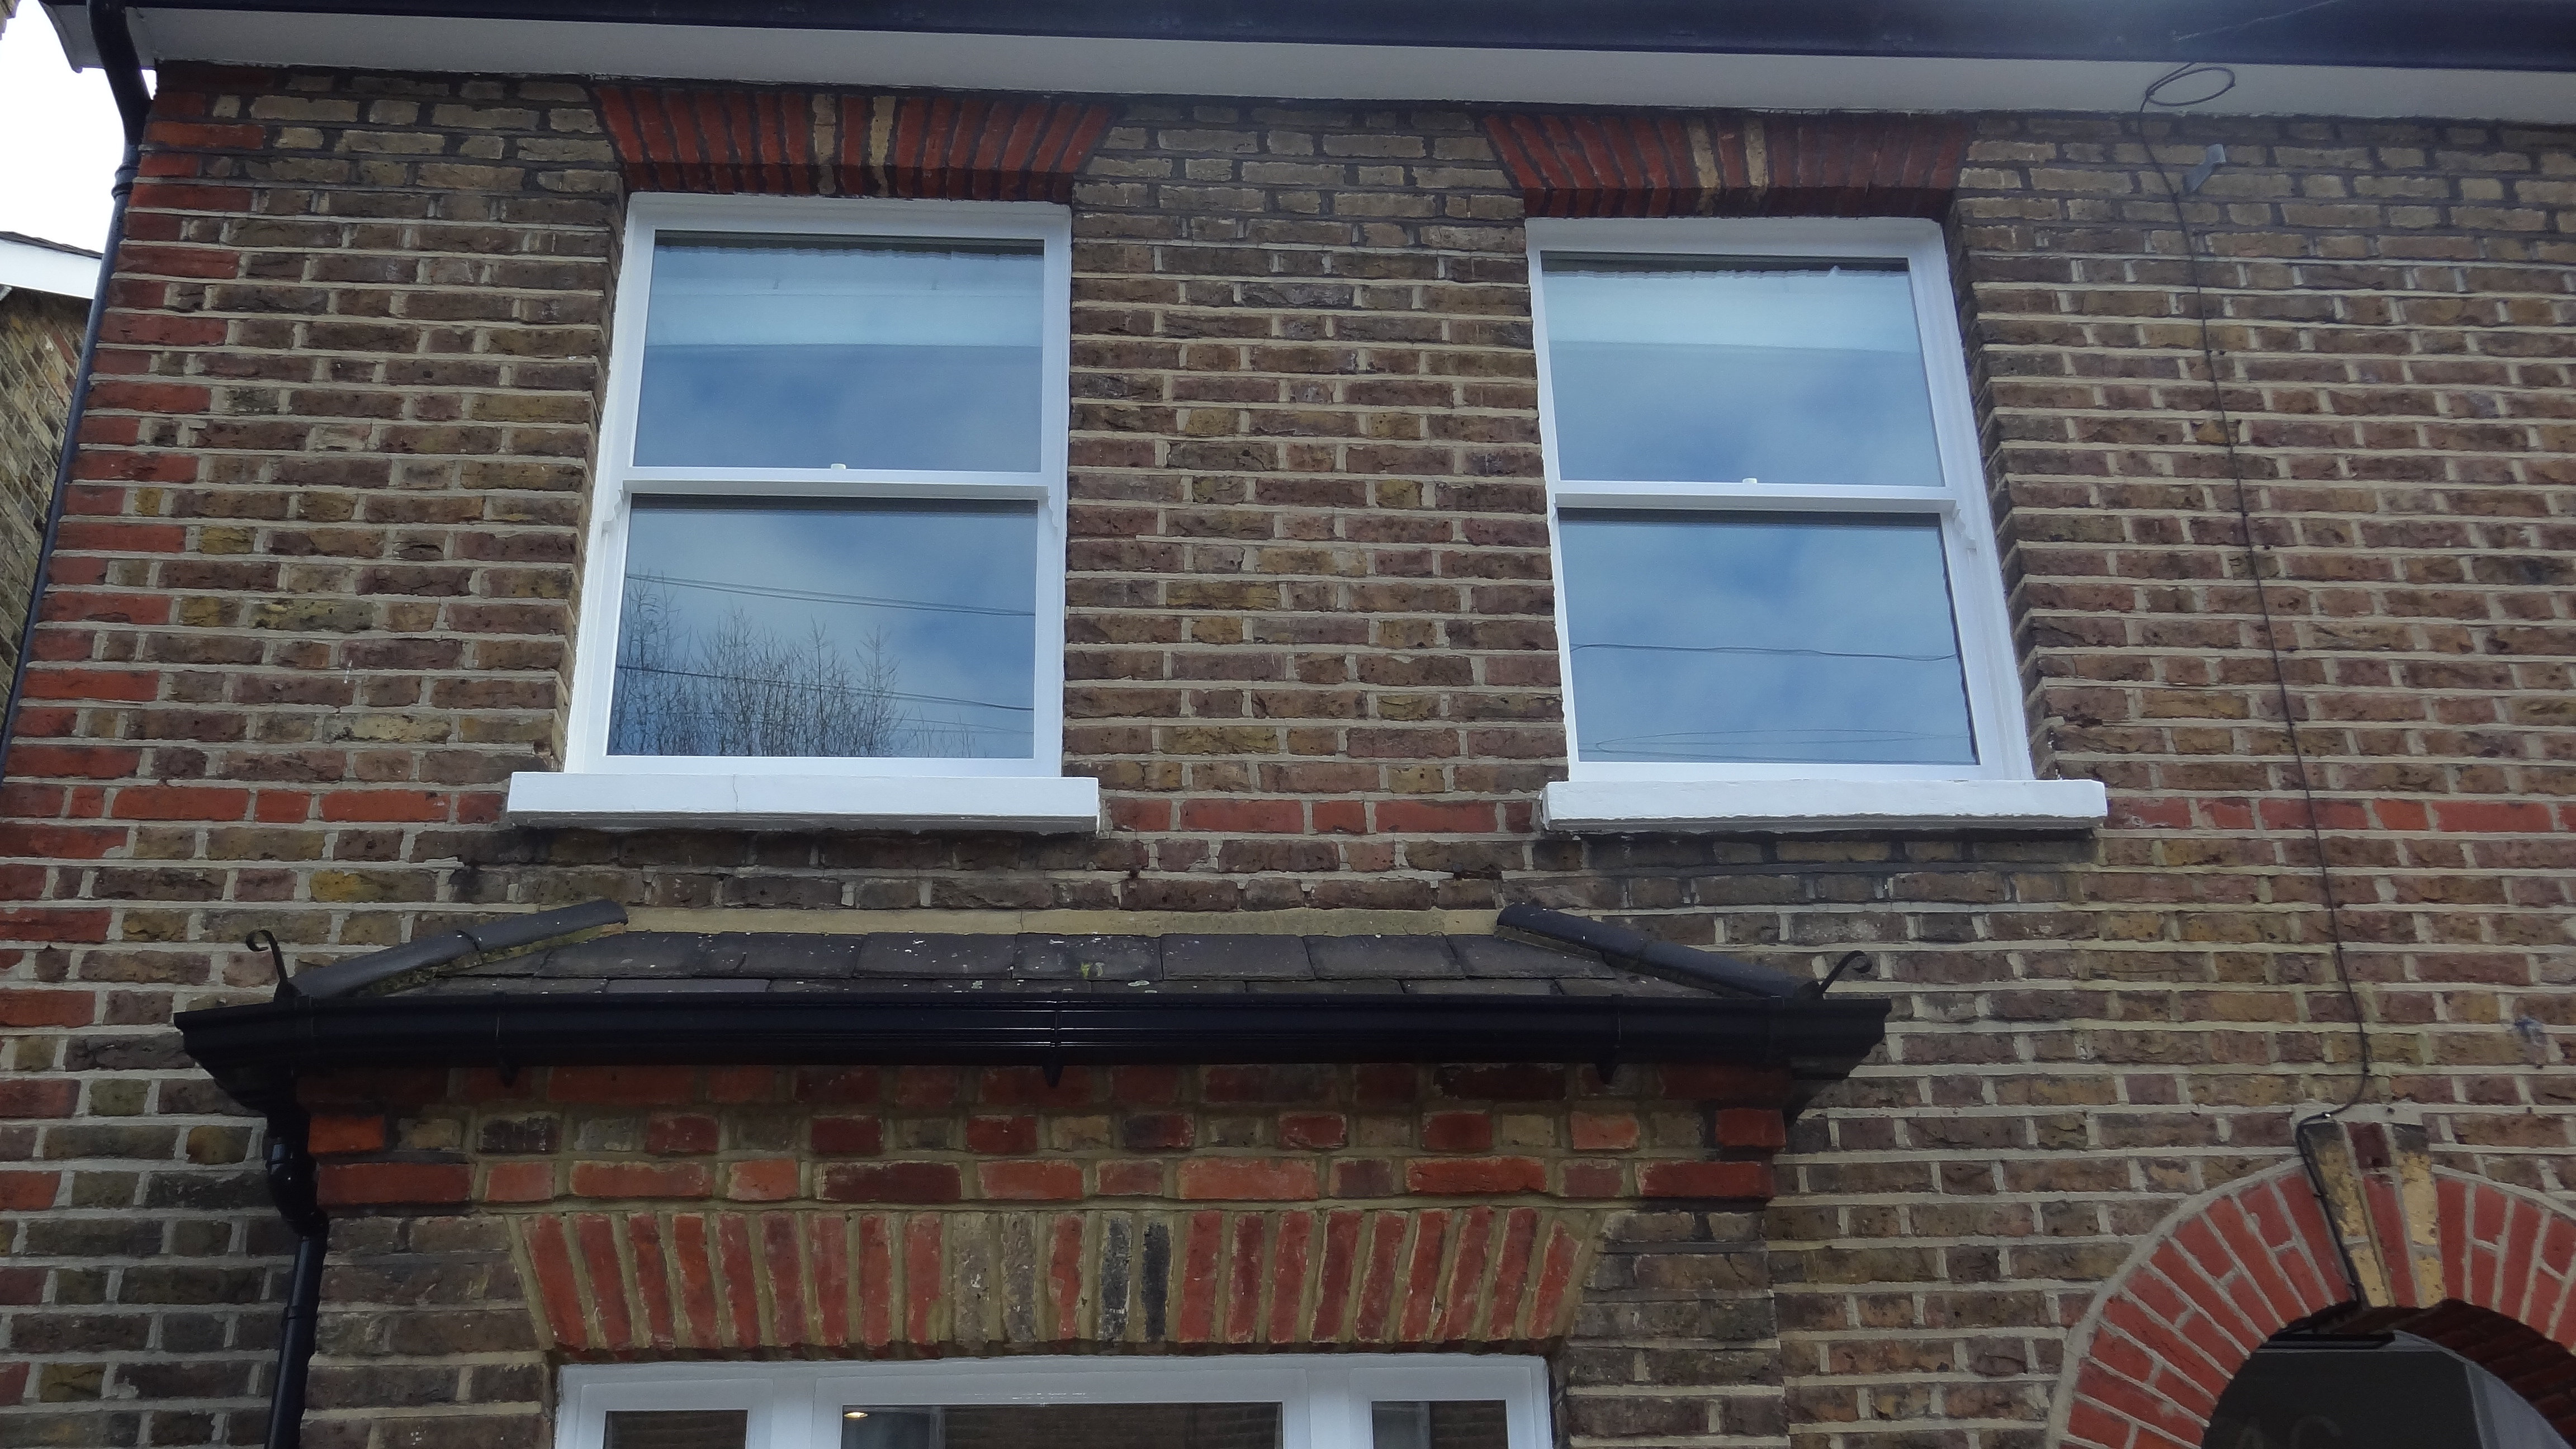 mortice green specialist sash window repairs and replacement sash window renovation london. Black Bedroom Furniture Sets. Home Design Ideas